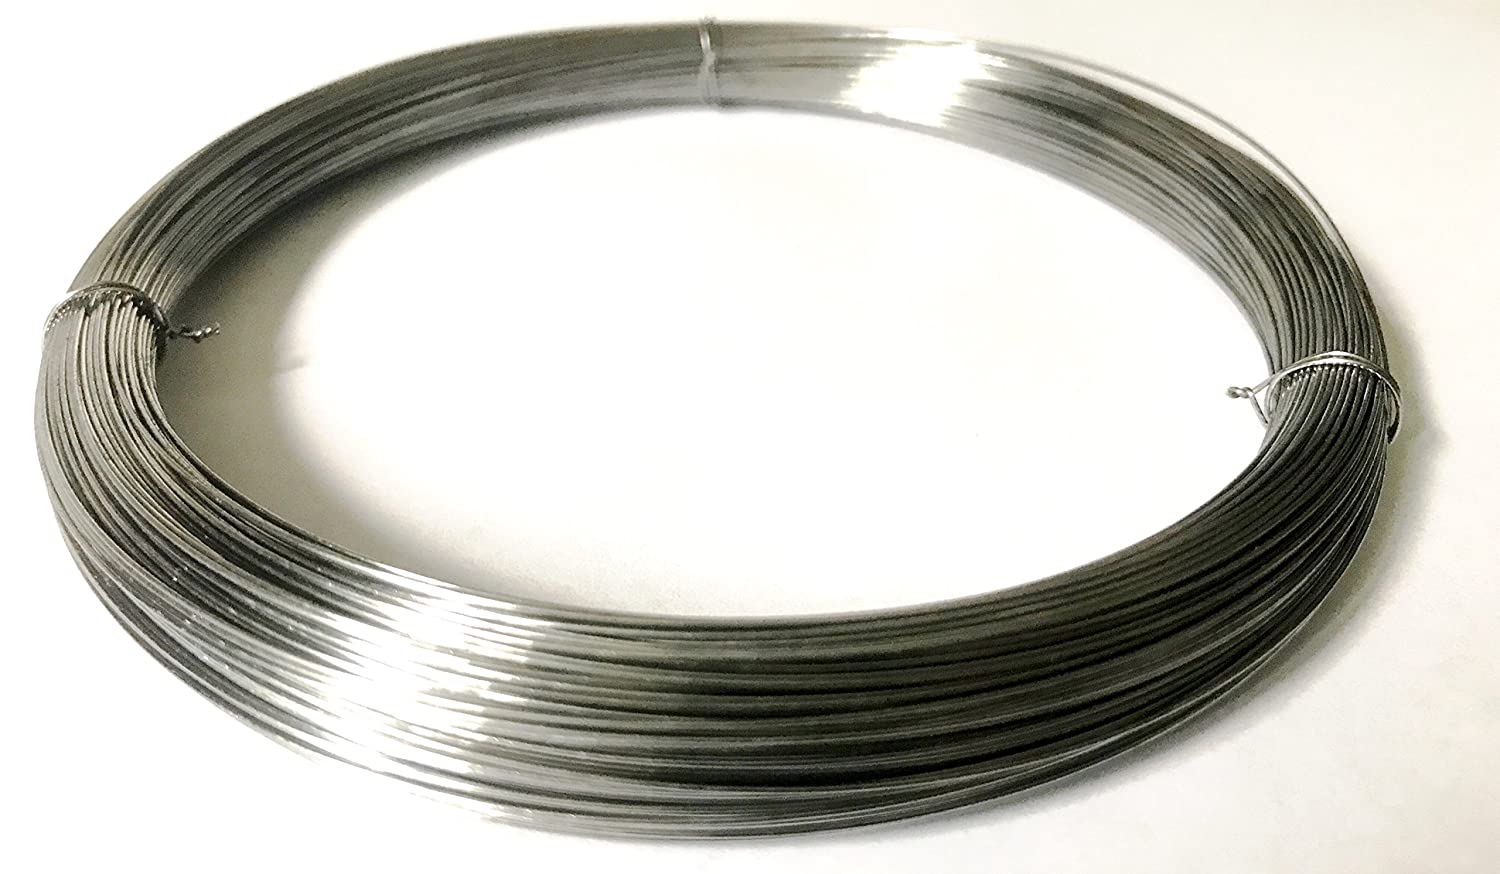 Mill Finish #2B Grade #2B Smooth Full Hard Temper Meets ASTM A228 Specifications Smooth Finish 0.029 Diameter 446 Length High Carbon Steel Wire Precision